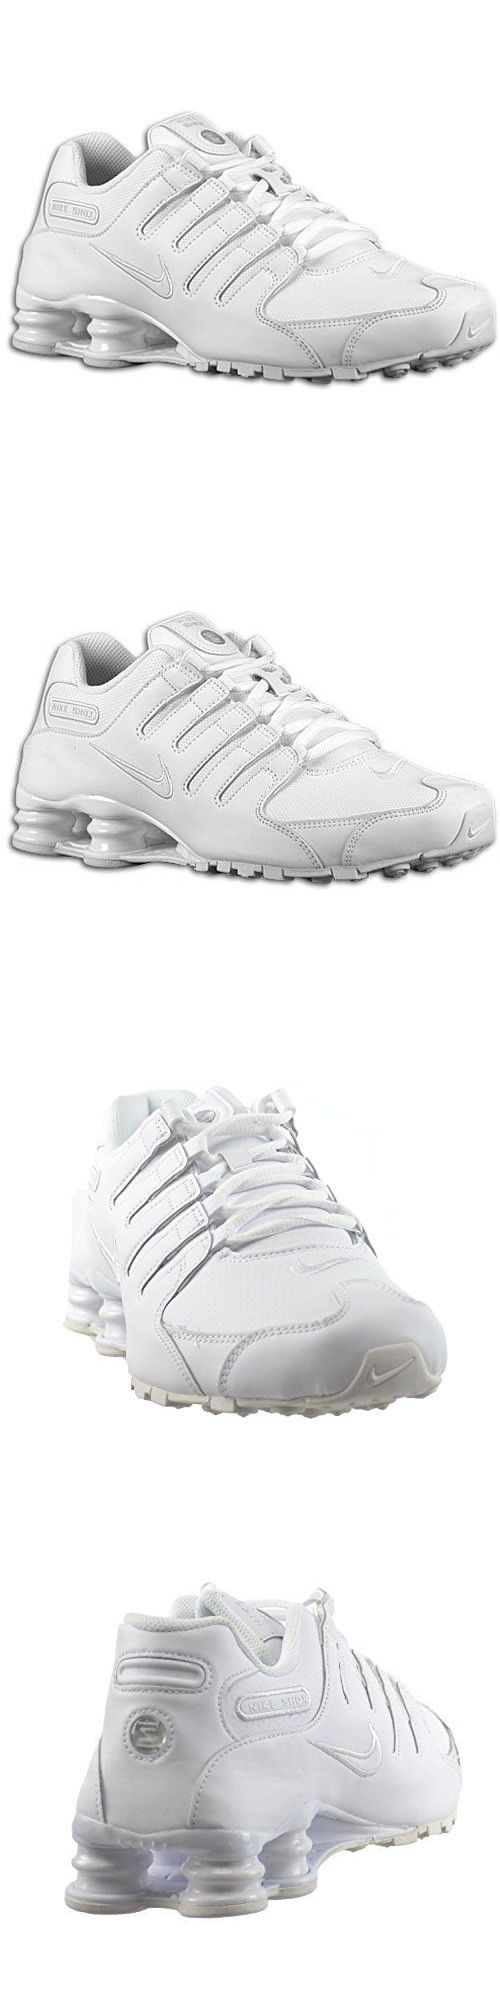 046c83b0a92 ... discount men shoes mens nike shox nz sneakers white shoes size 10.5  running leather 378341 128